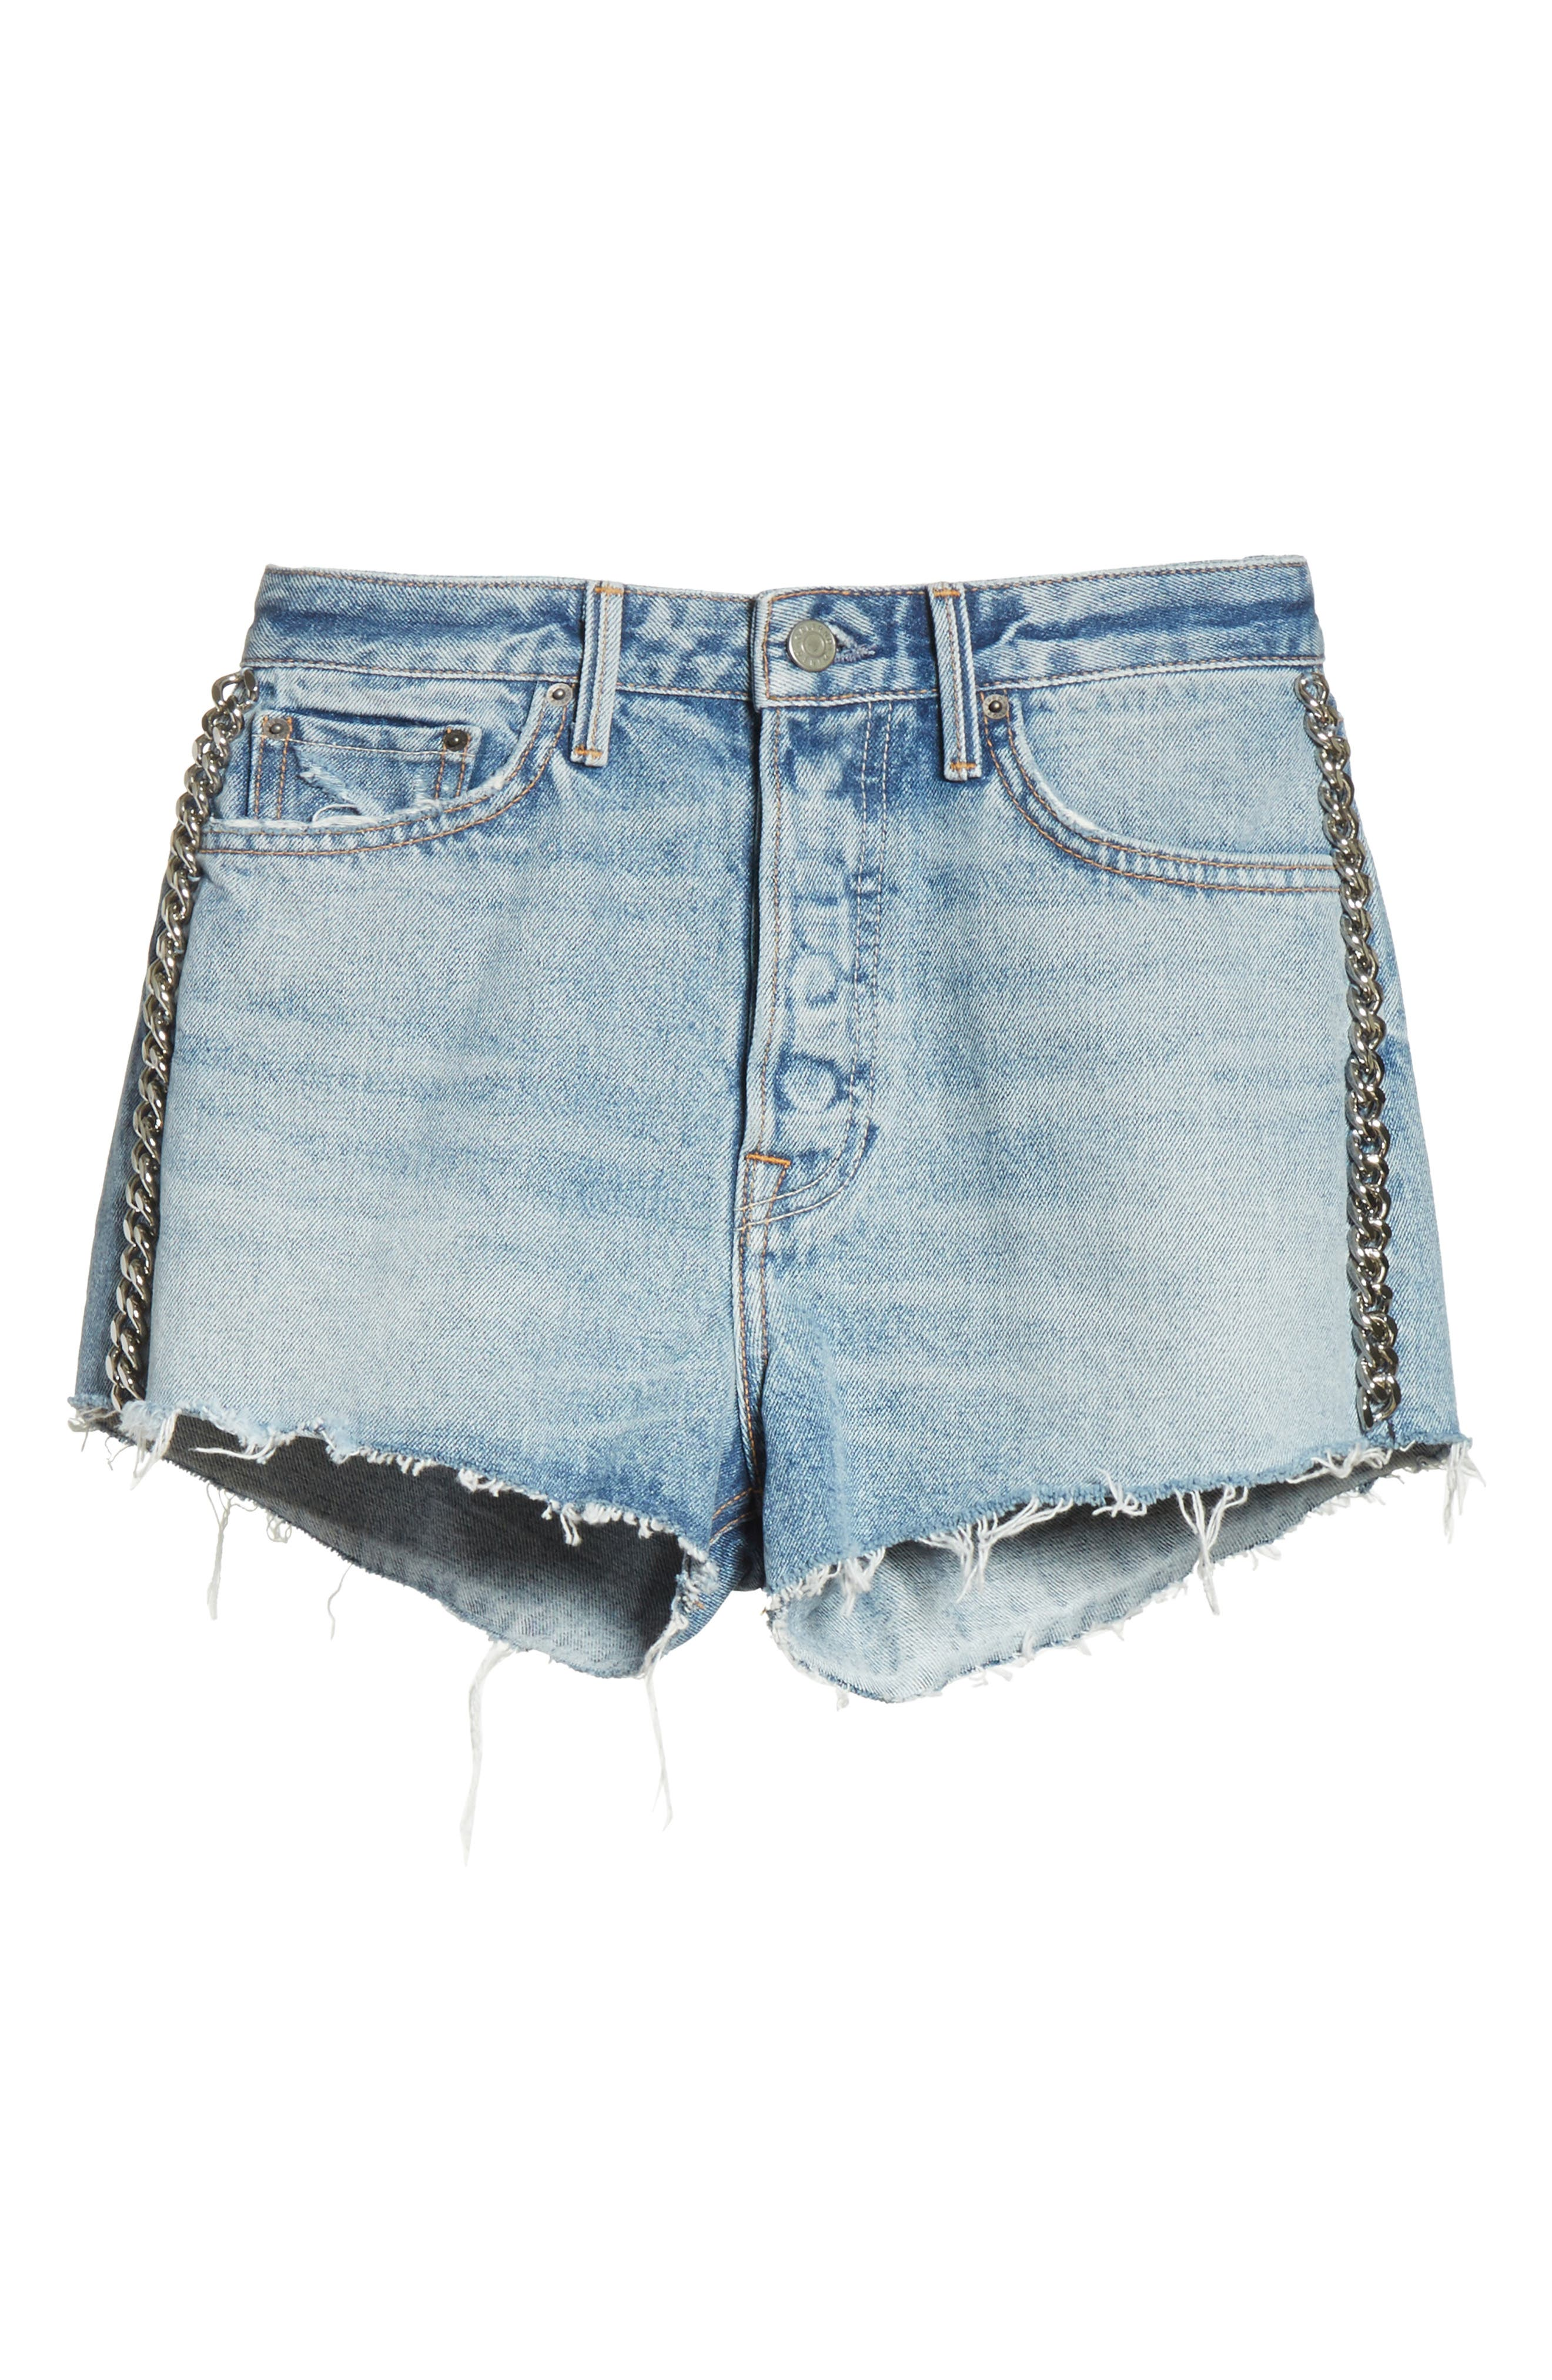 Cindy Rigid High Waist Denim Shorts,                             Alternate thumbnail 6, color,                             Cast Iron